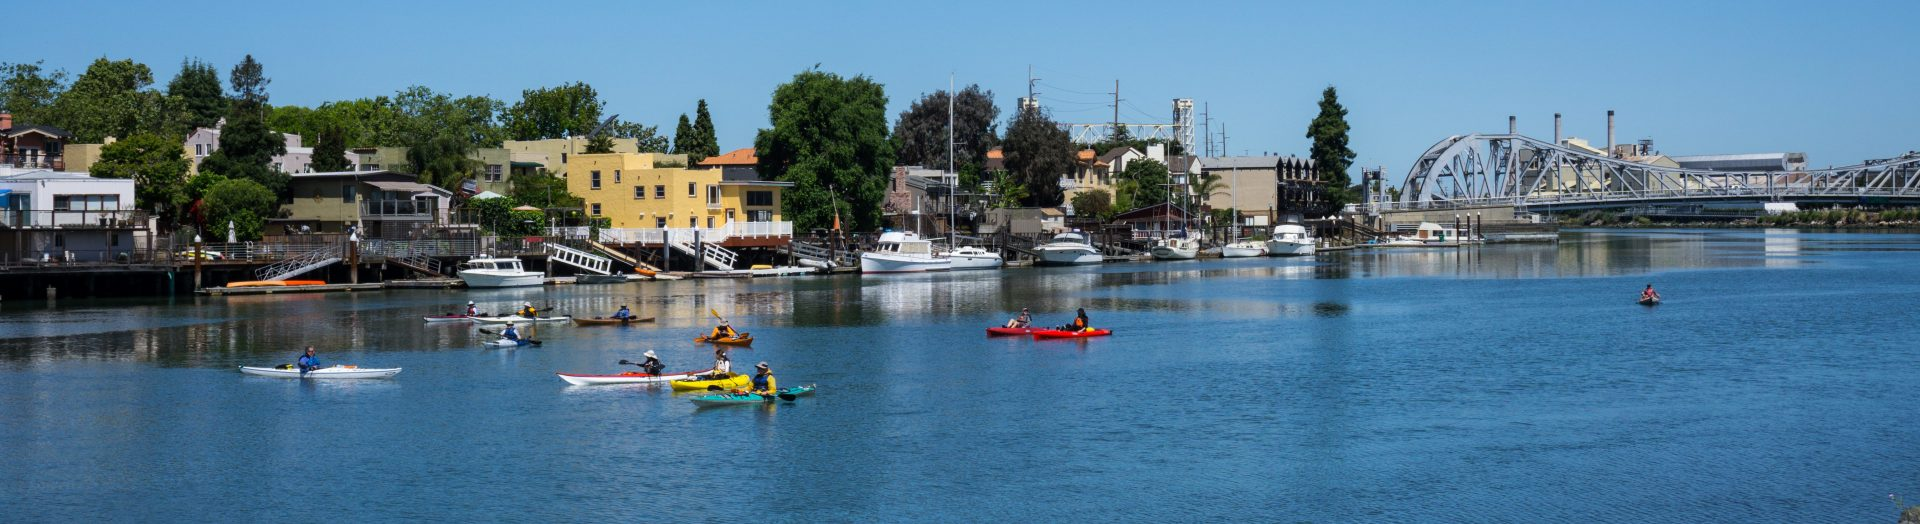 Panoramic view of kayaks on blue water, with shoreline docks and bridge in distance